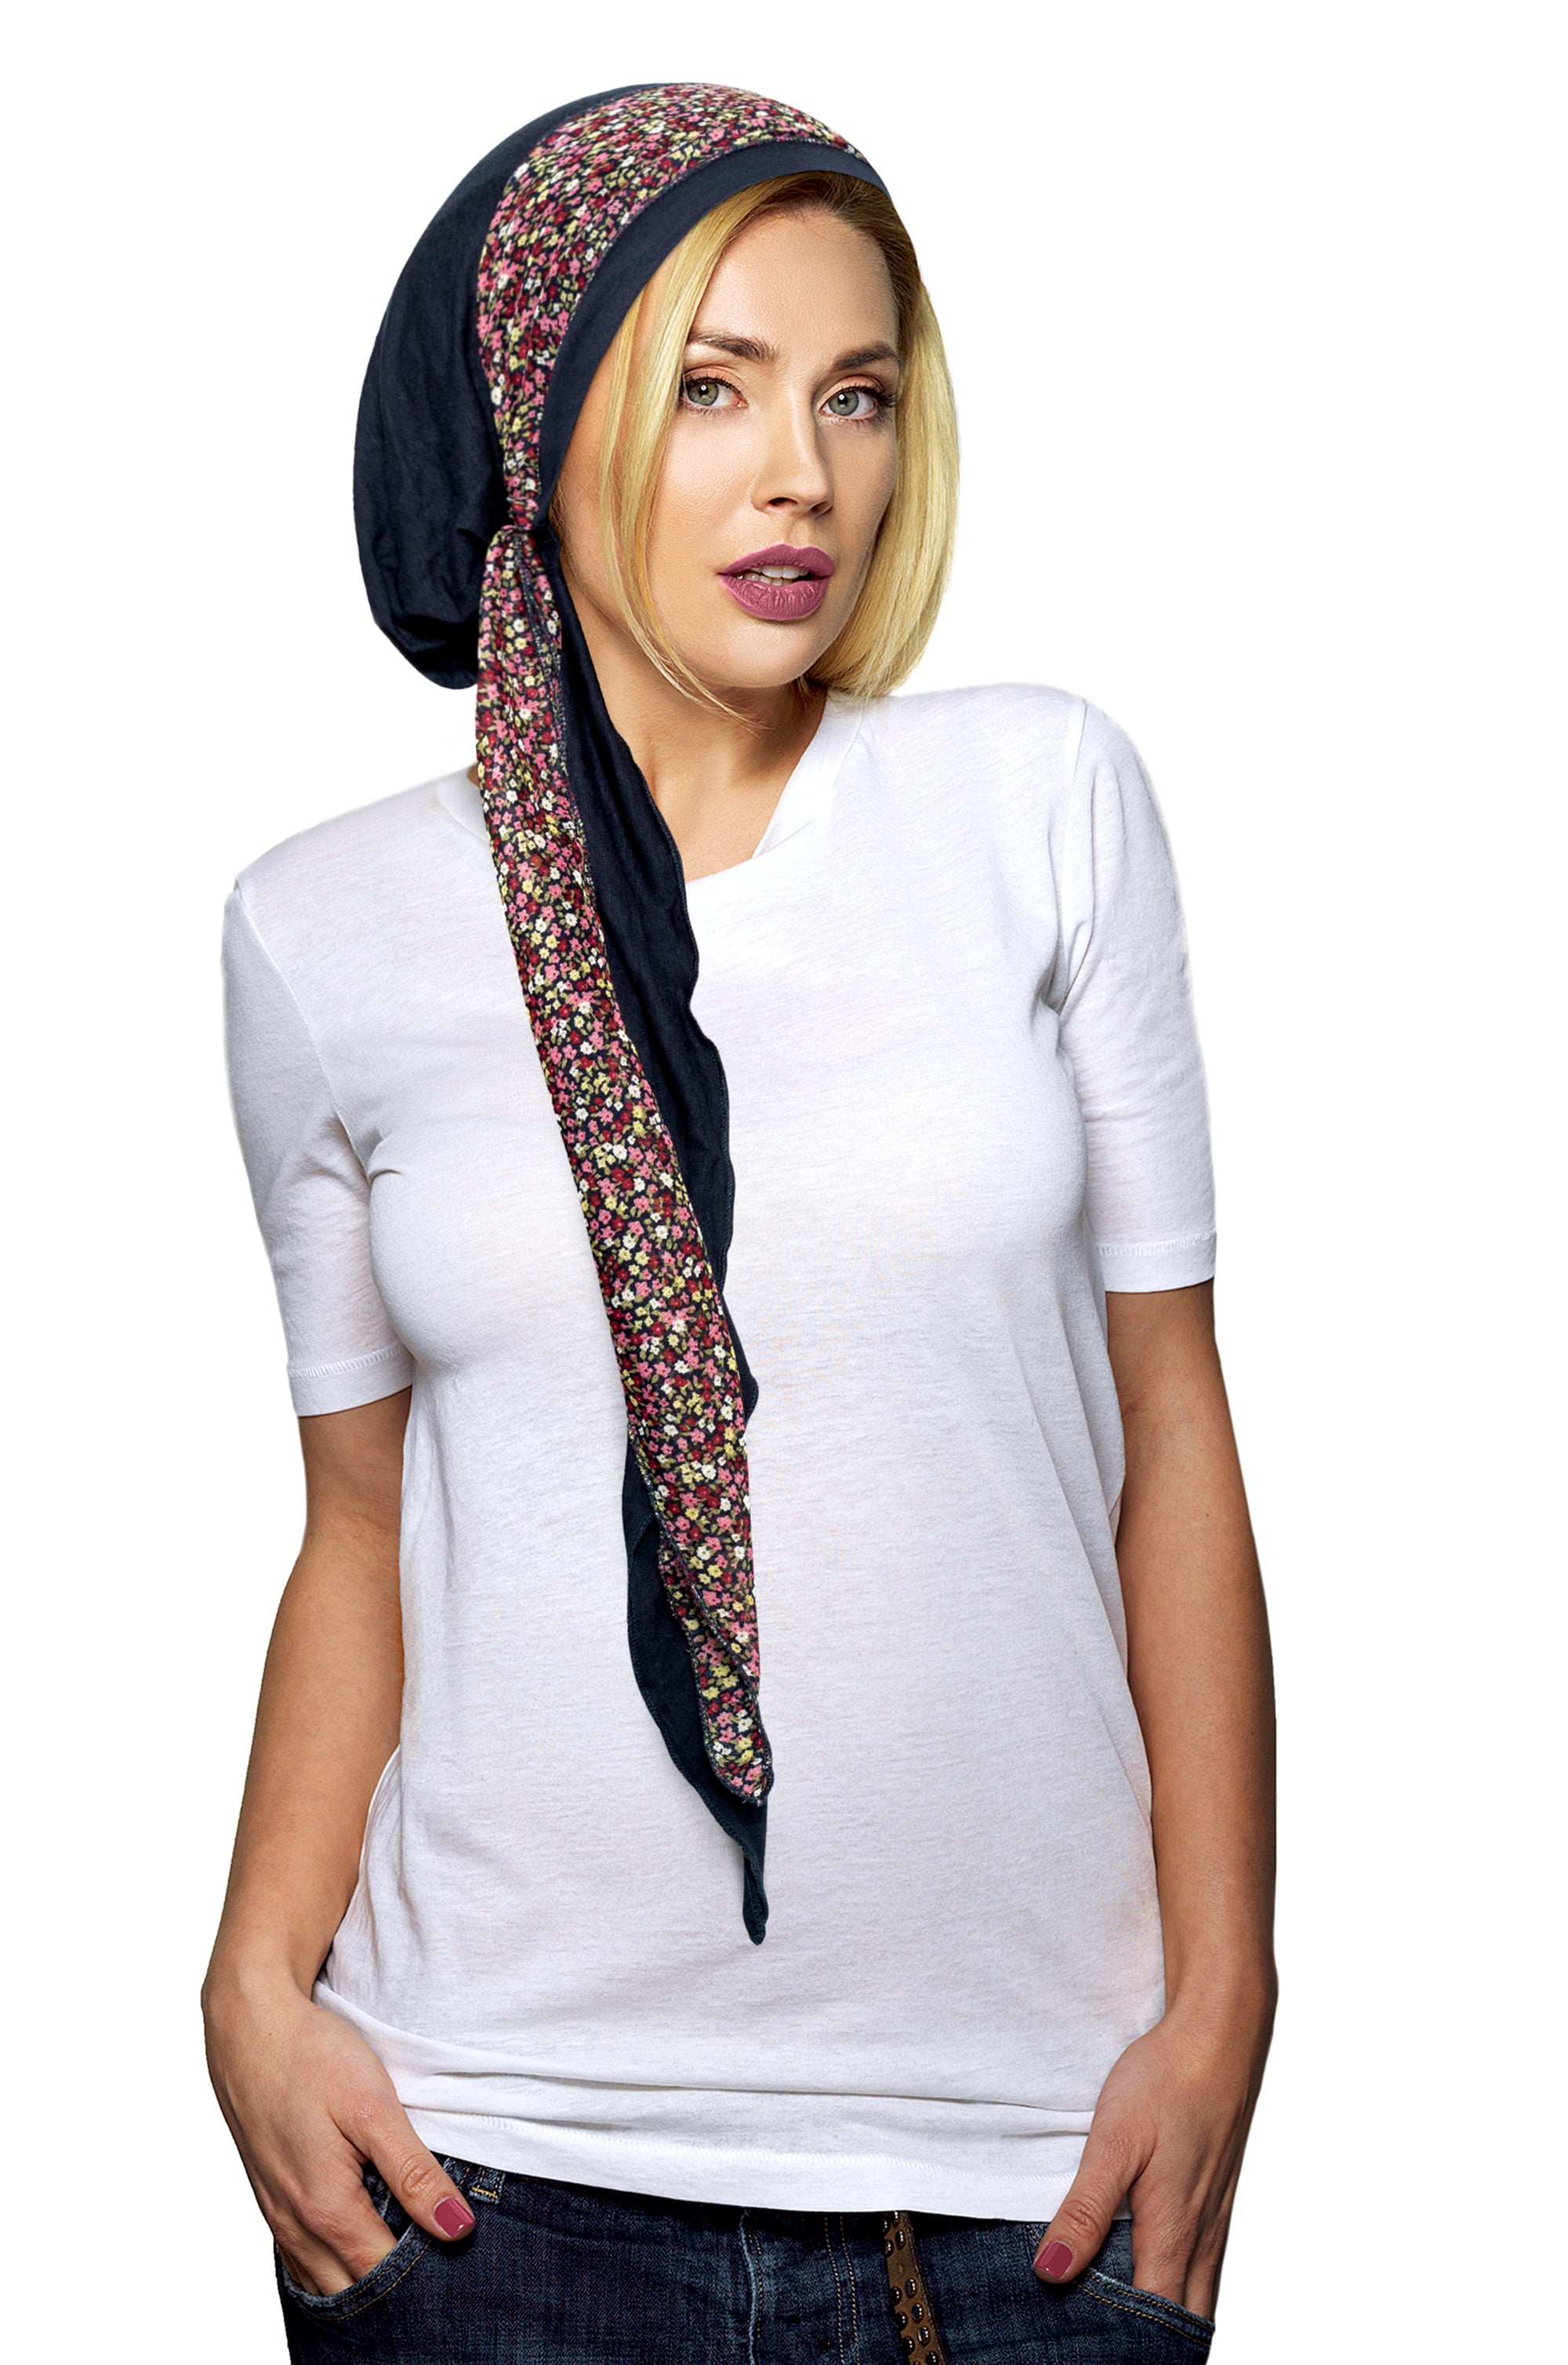 Navy blue pre-tied headscarf with chiffon floral wrap